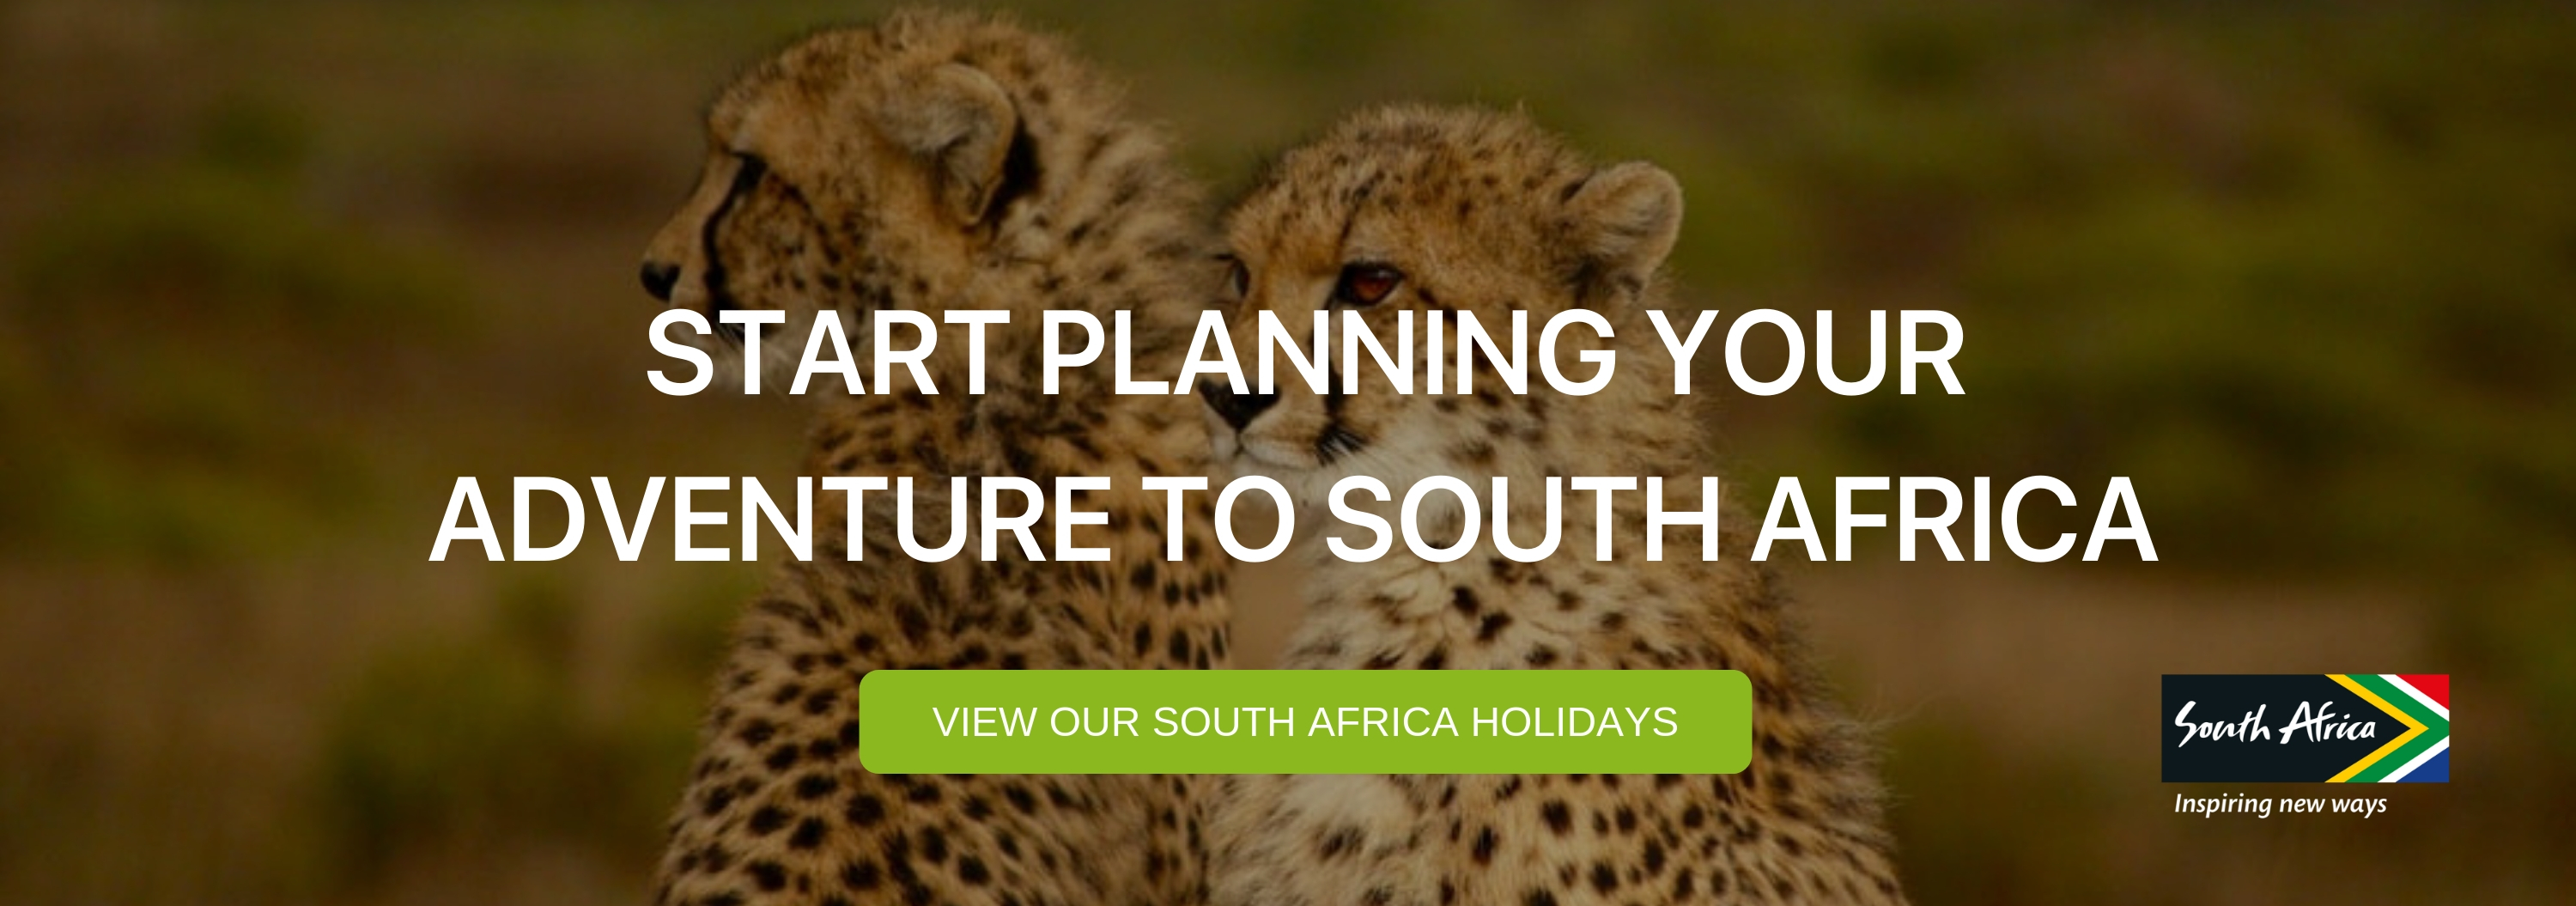 "A banner that says ""Start Planning your Adventure to South Africa"""